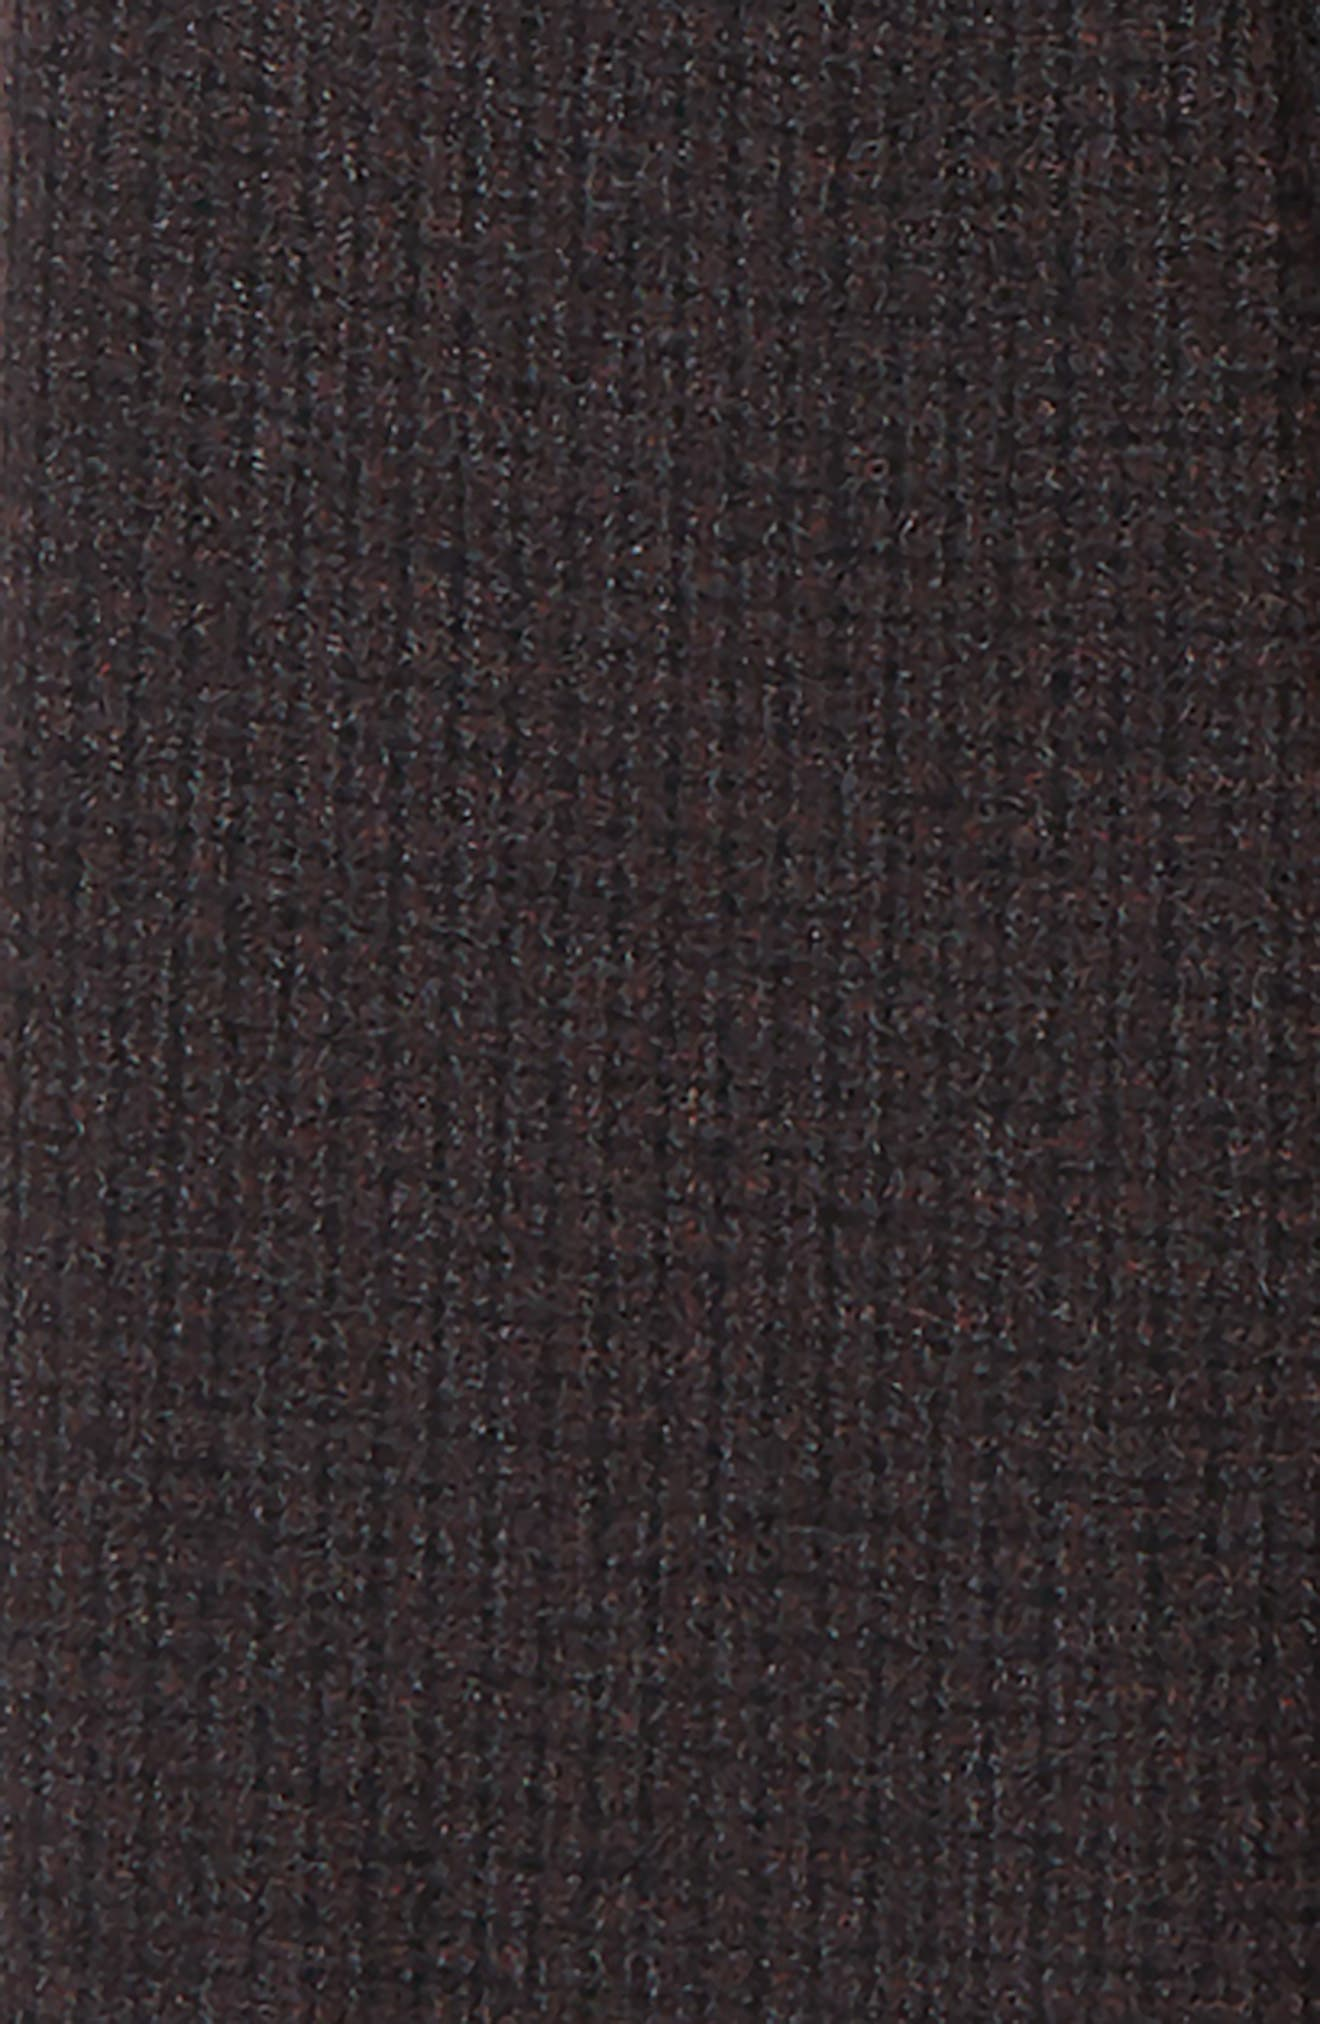 Charcoal Wool Sport Coat,                             Alternate thumbnail 2, color,                             CHARCOAL